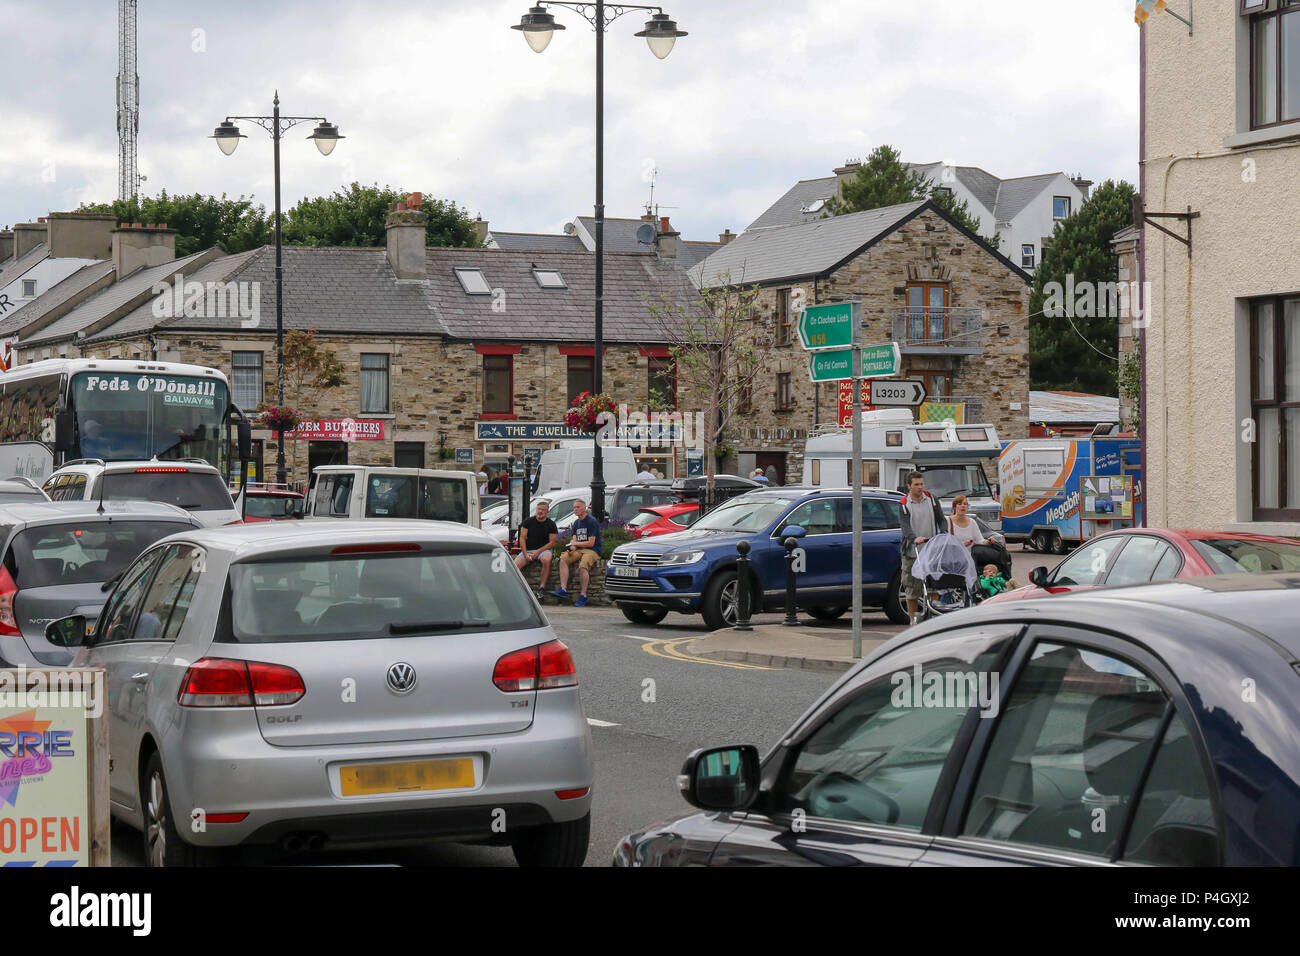 Traffic and people in the centre of a Donegal village - Dunfanaghy is a popular spot for tourists. - Stock Image